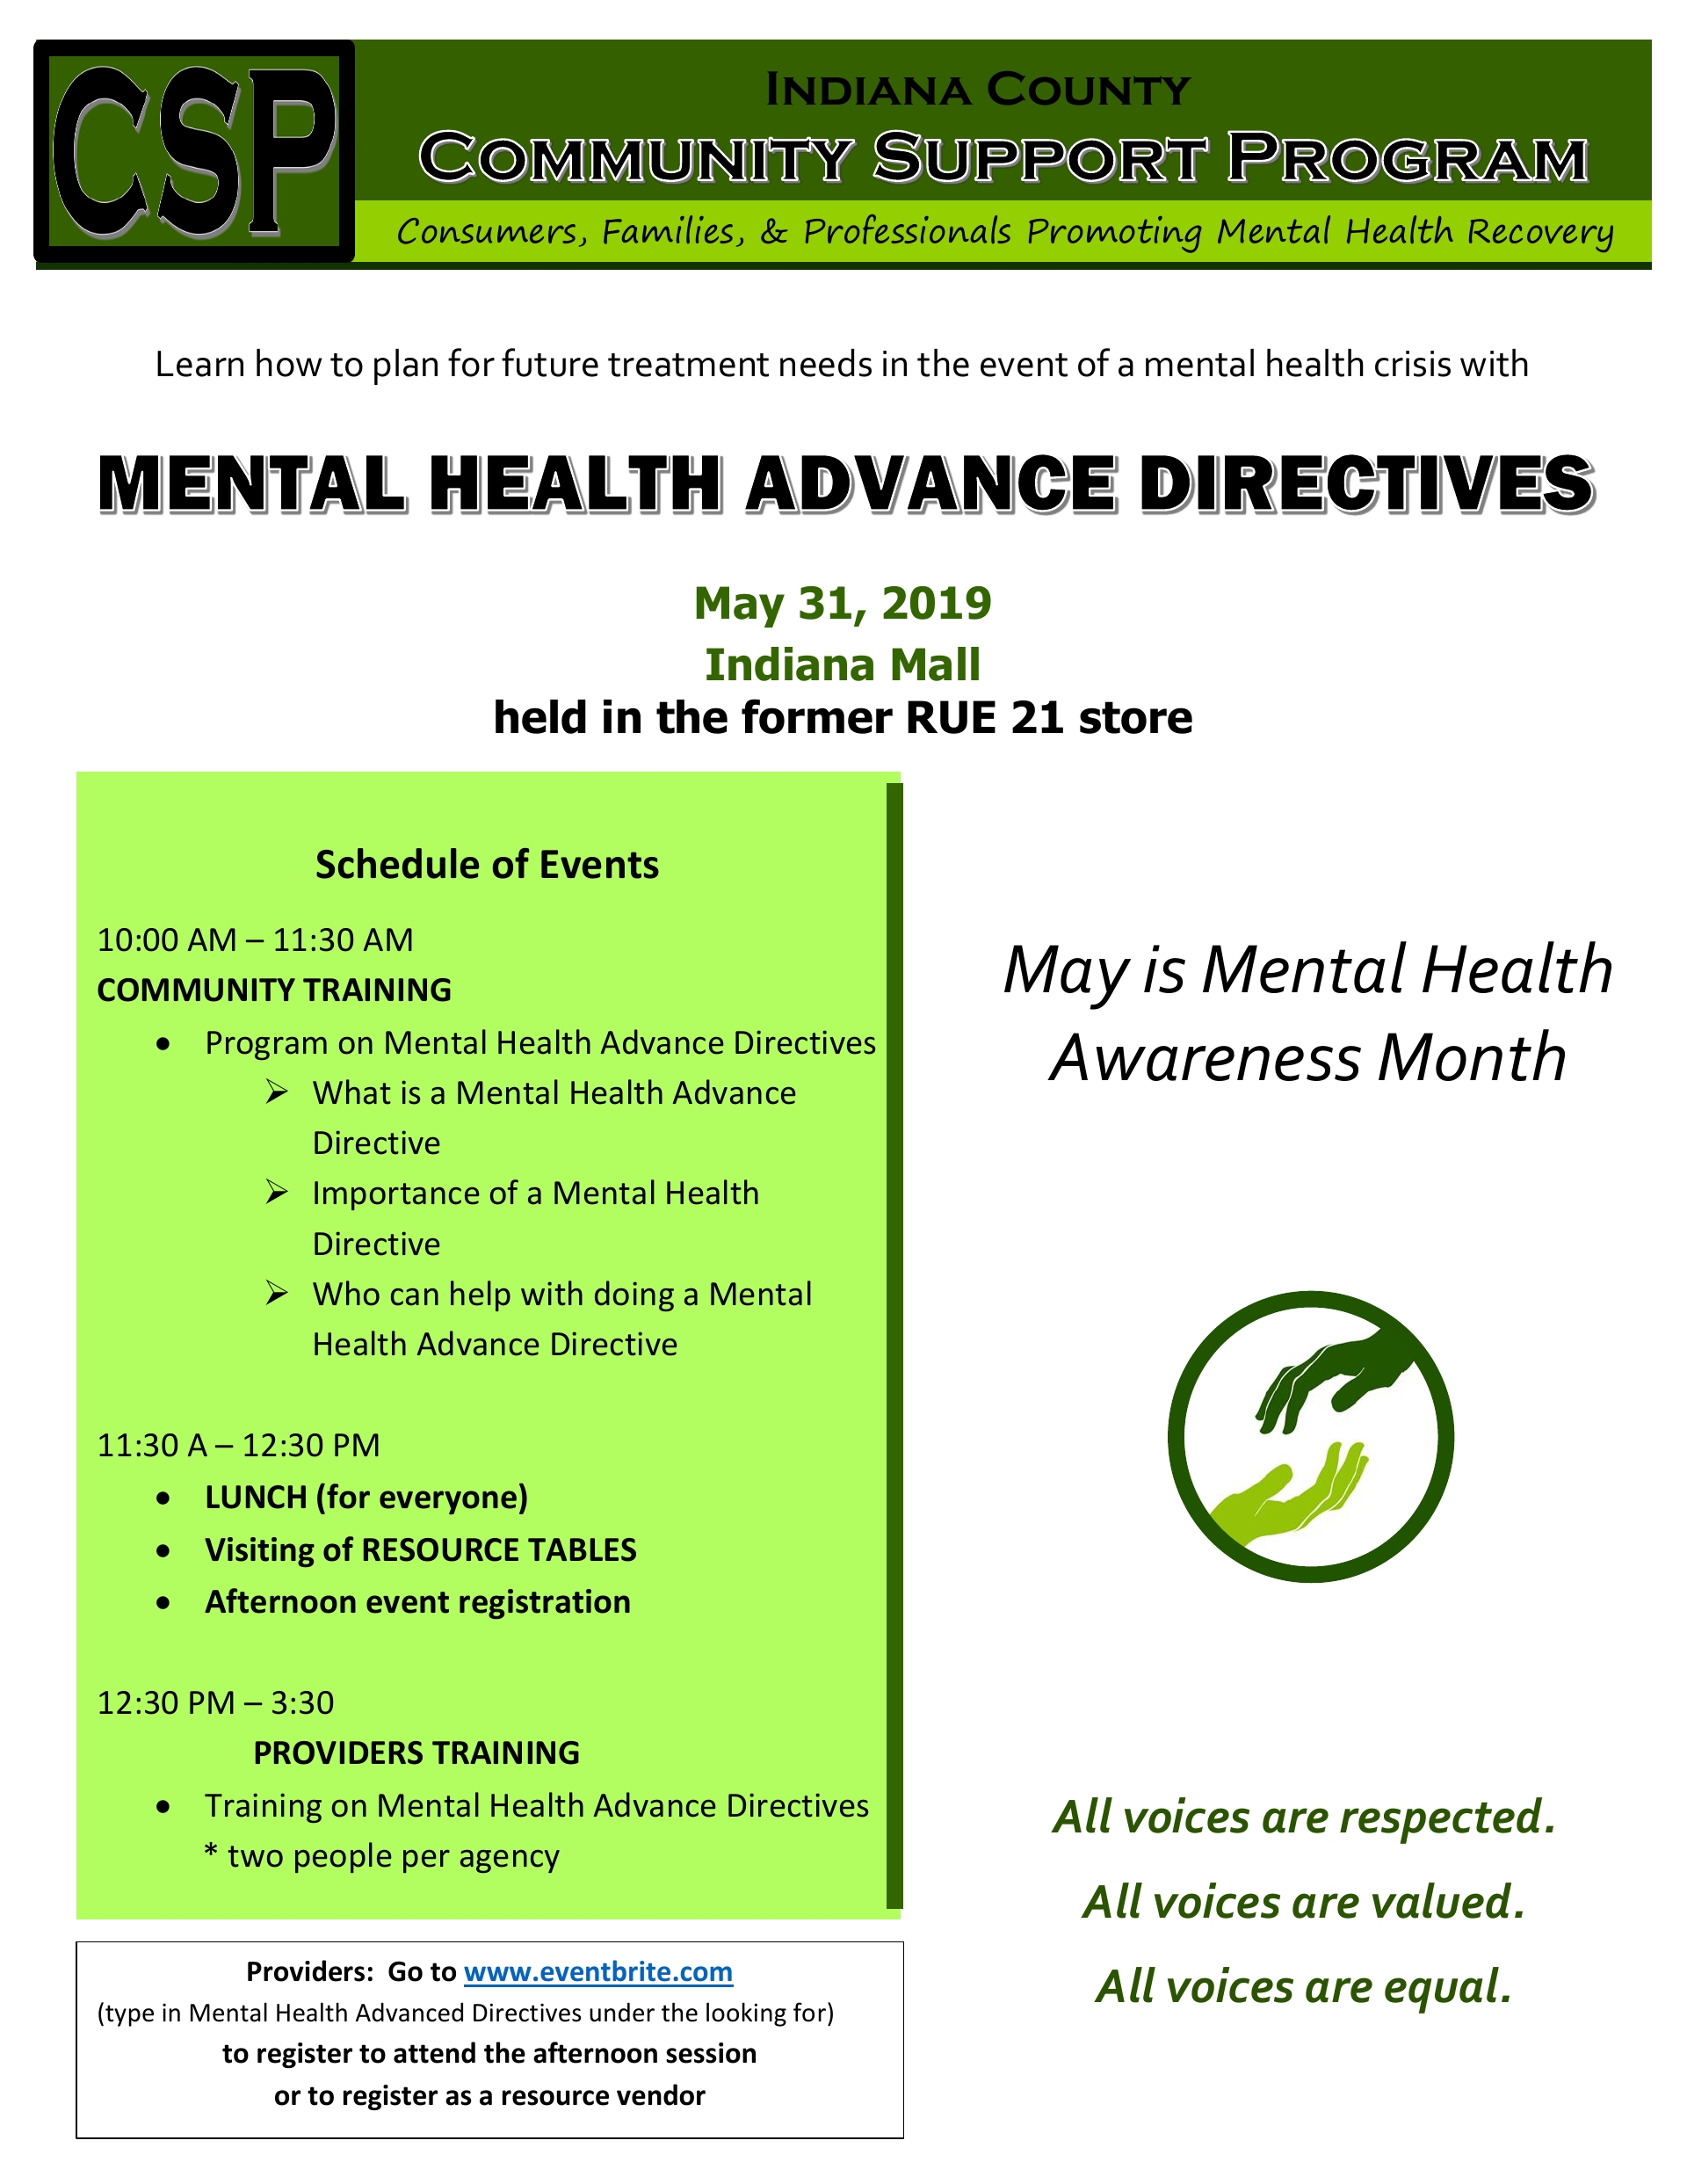 May 31st Mental Health Advanced Directive Event Indiana PA